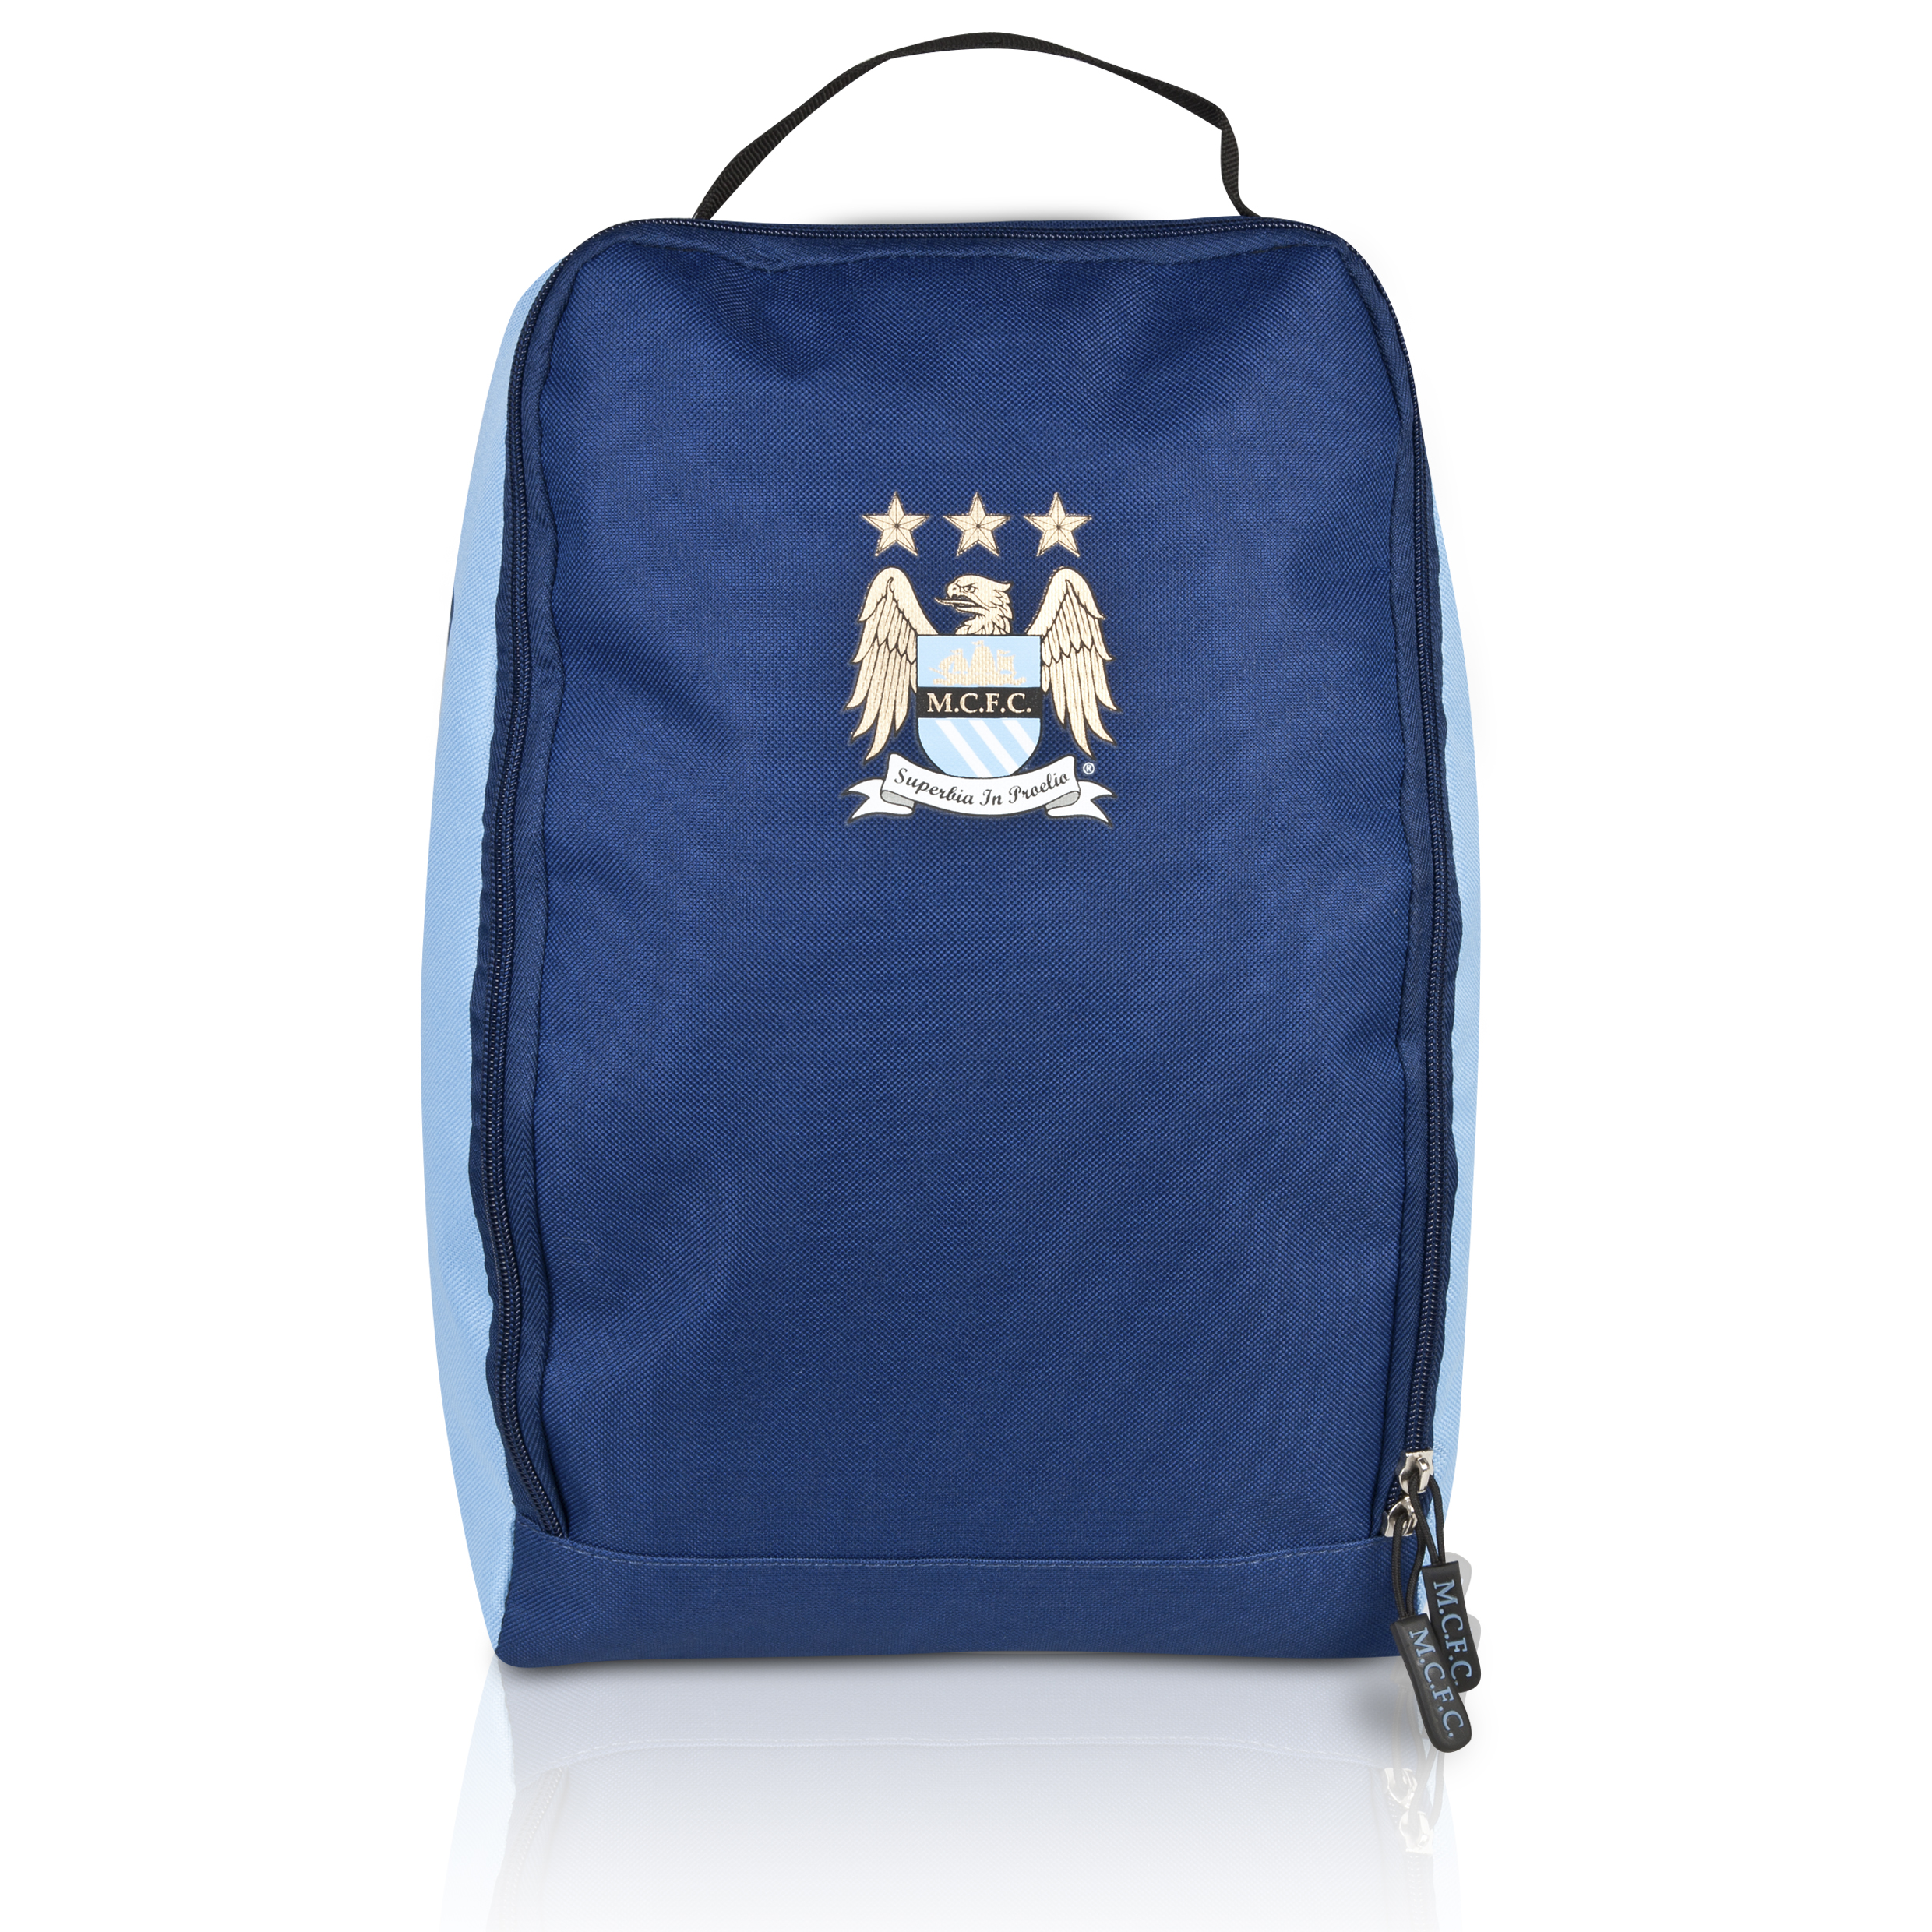 Manchester City Core Shoebag - Navy